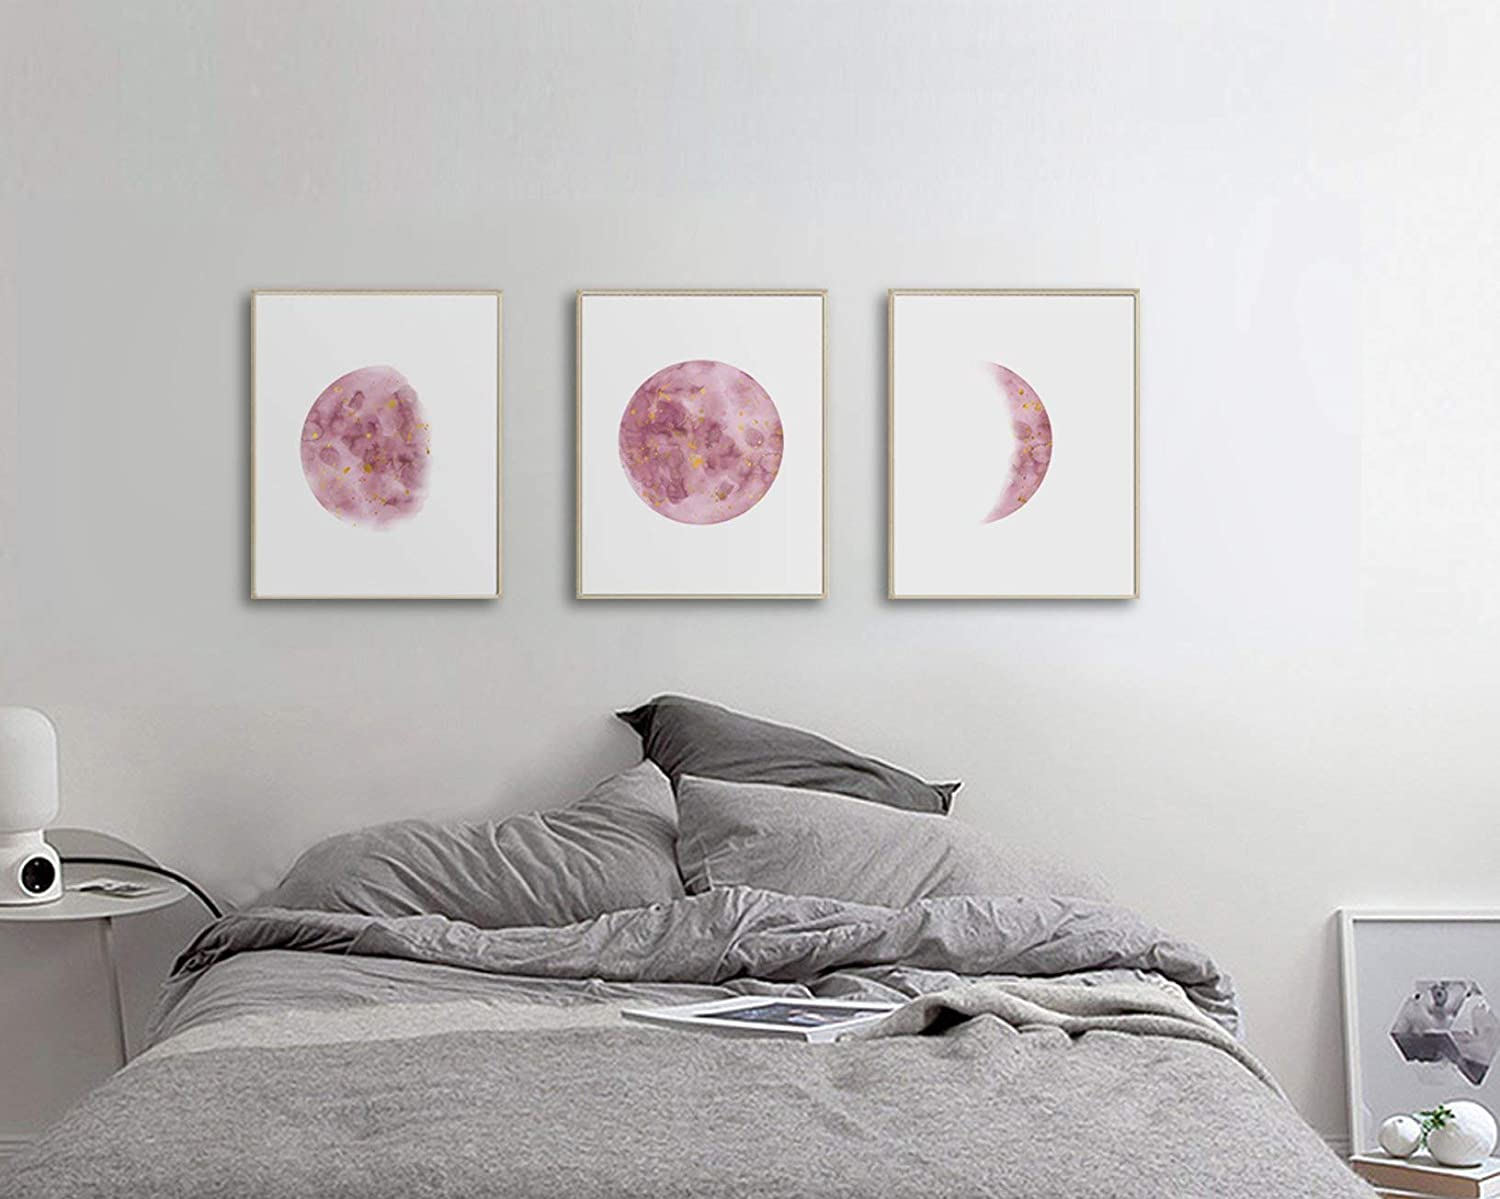 Bedroom Wall Art For Teen Girls, Moon Phases Wall Art Print, Girl Room Wall  Art, Bedroom Wall Art Red, Christmas Gift For Girl, 3 Piece Wall Art Set